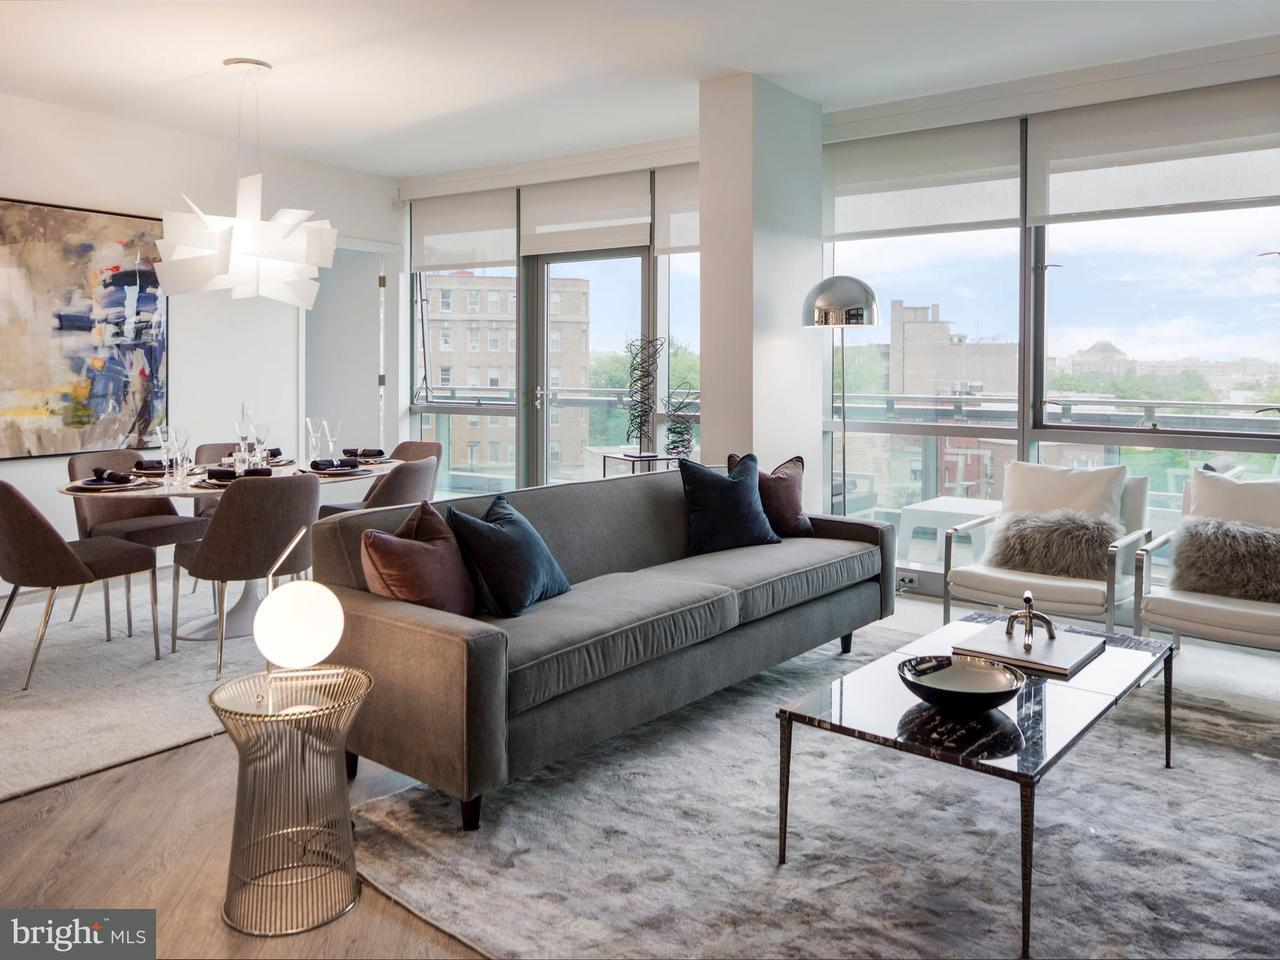 Other Residential for Rent at 1901 Connecticut Ave NW #414 Washington, District Of Columbia 20009 United States